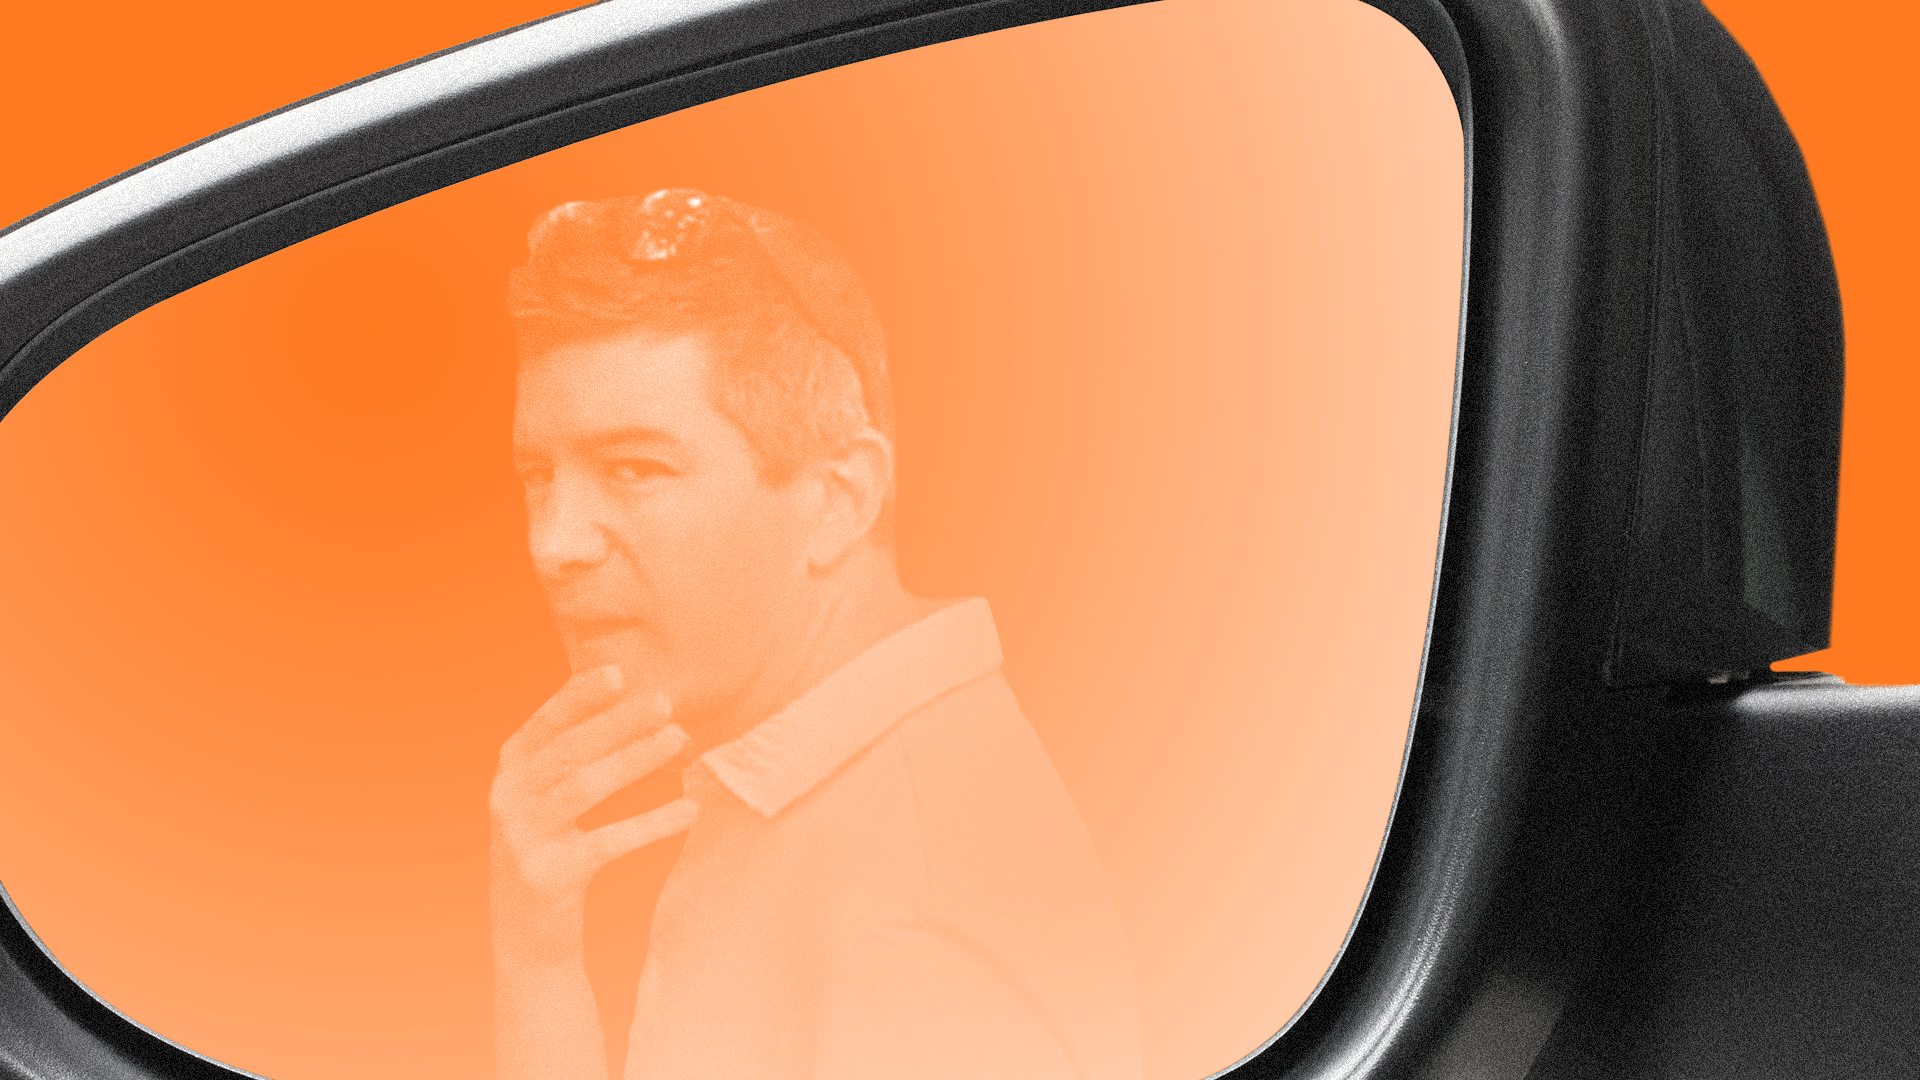 Travis Kalanick in a rearview mirror.